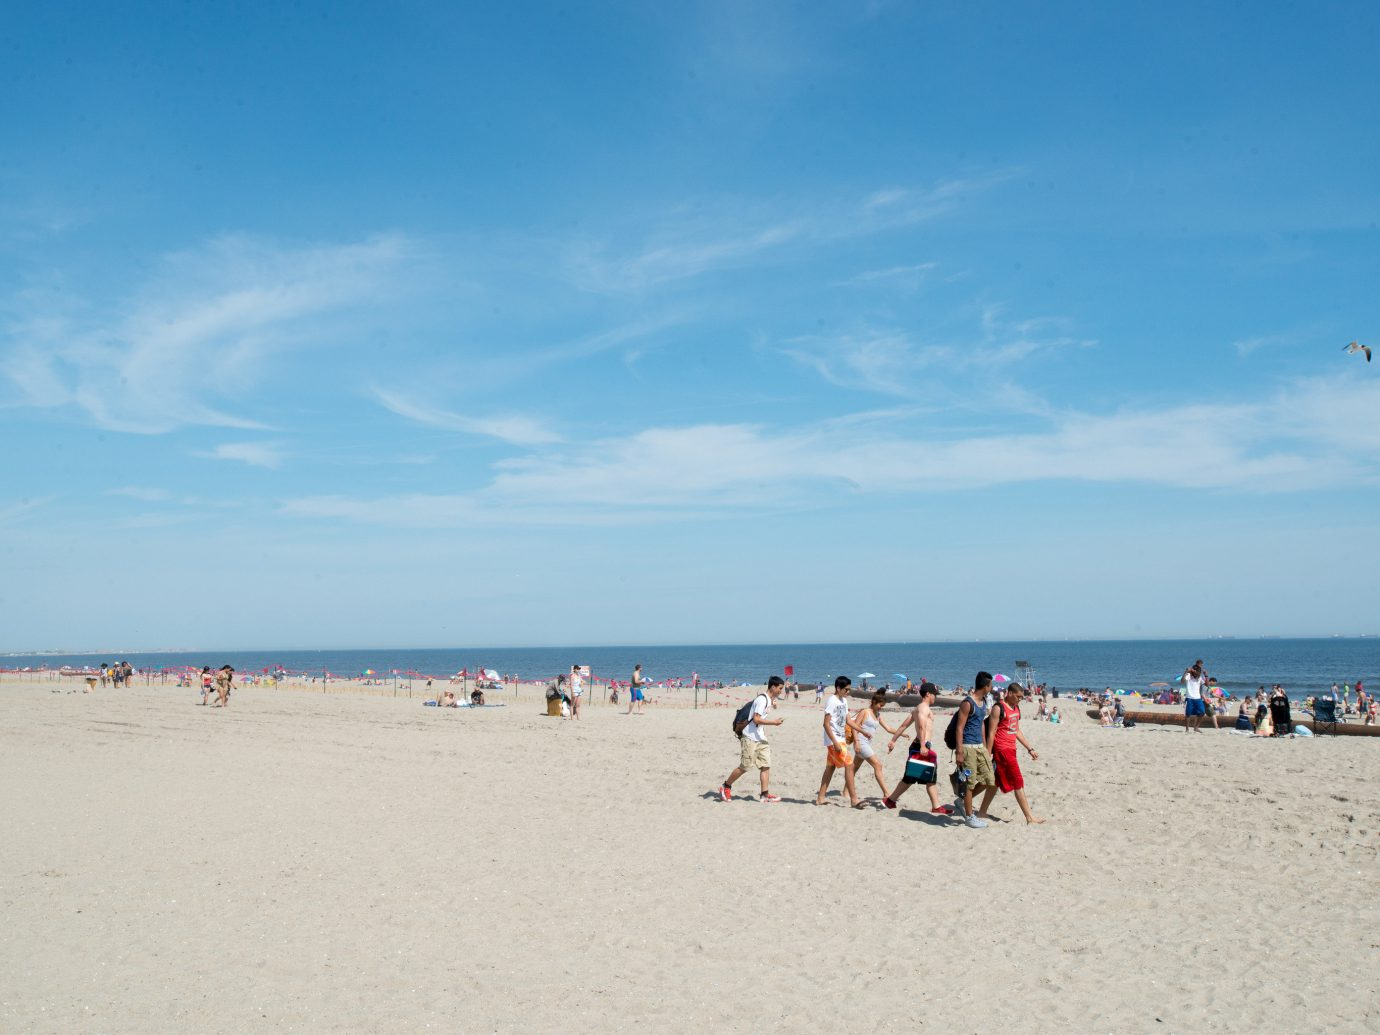 Trip Ideas sky outdoor Beach people shore Nature body of water Sea Coast Ocean group sand vacation cape bay crowd day